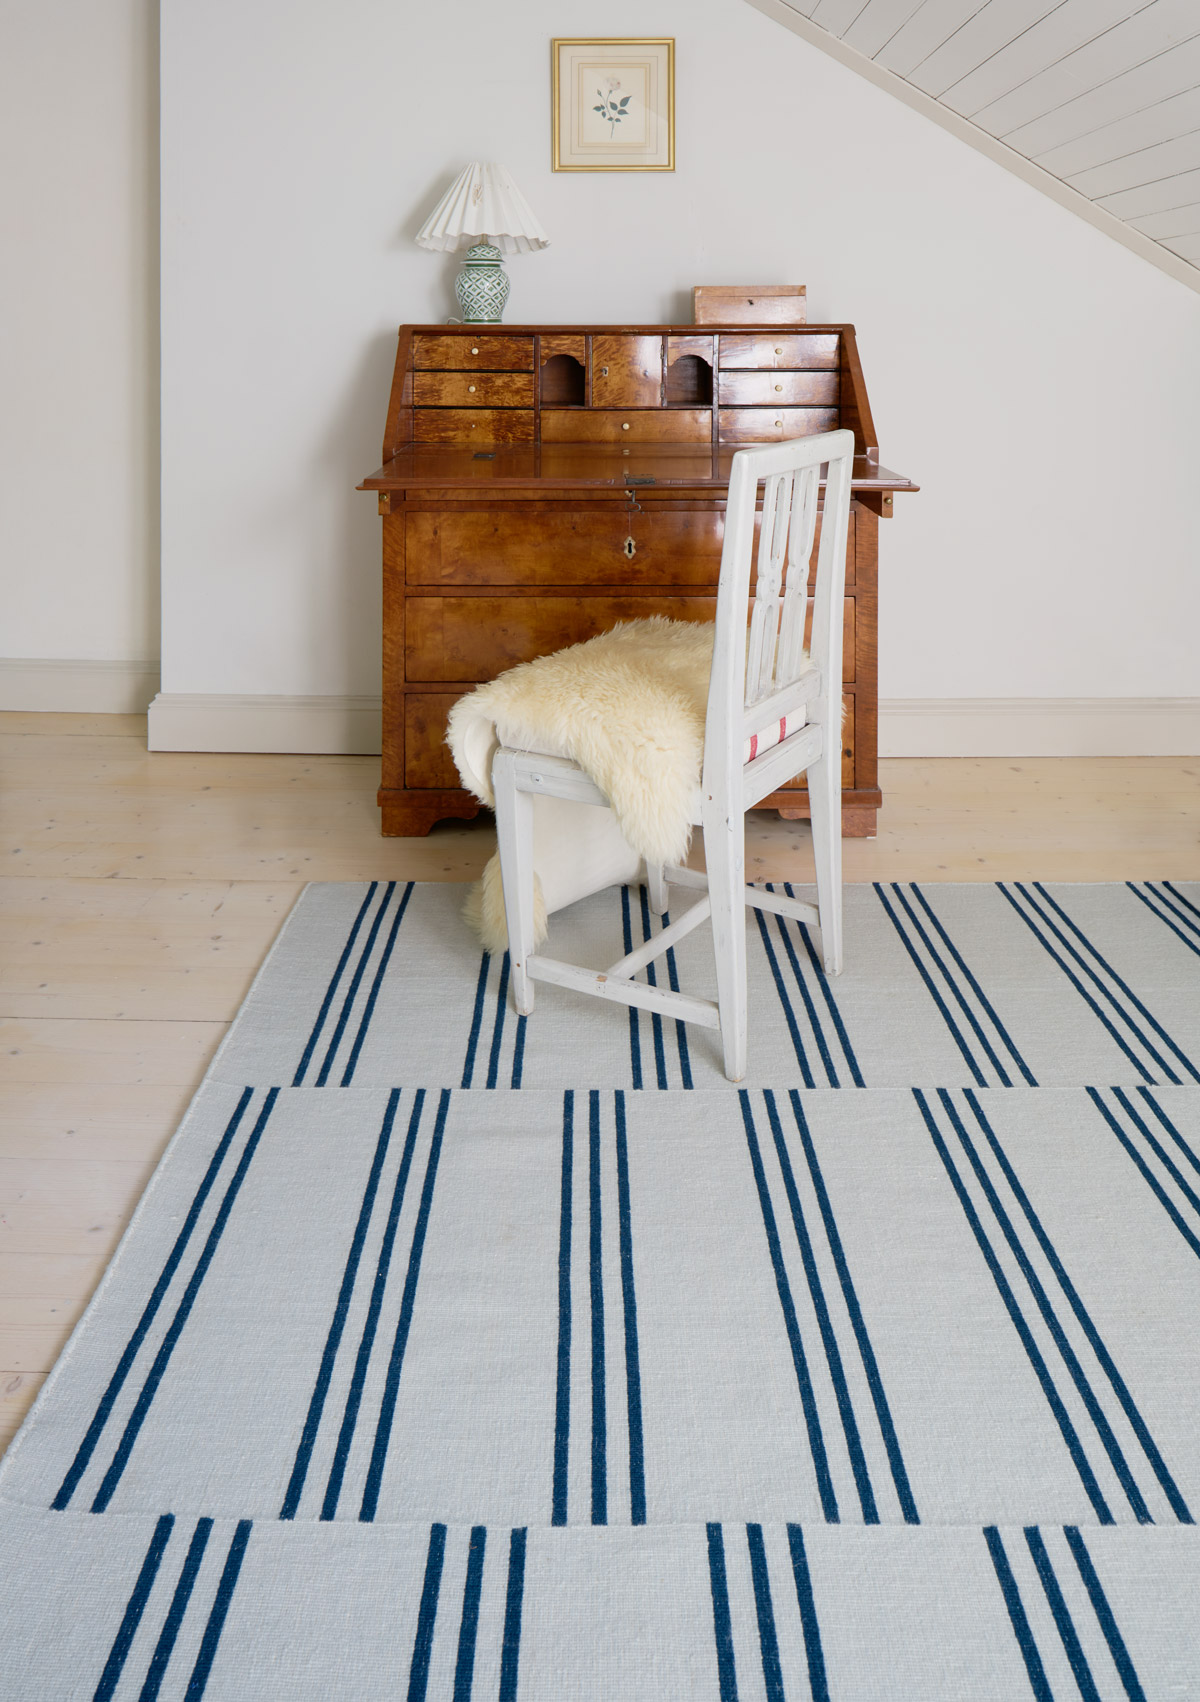 Stripes in Blue shown in a white room with a wooden desk and white chair.